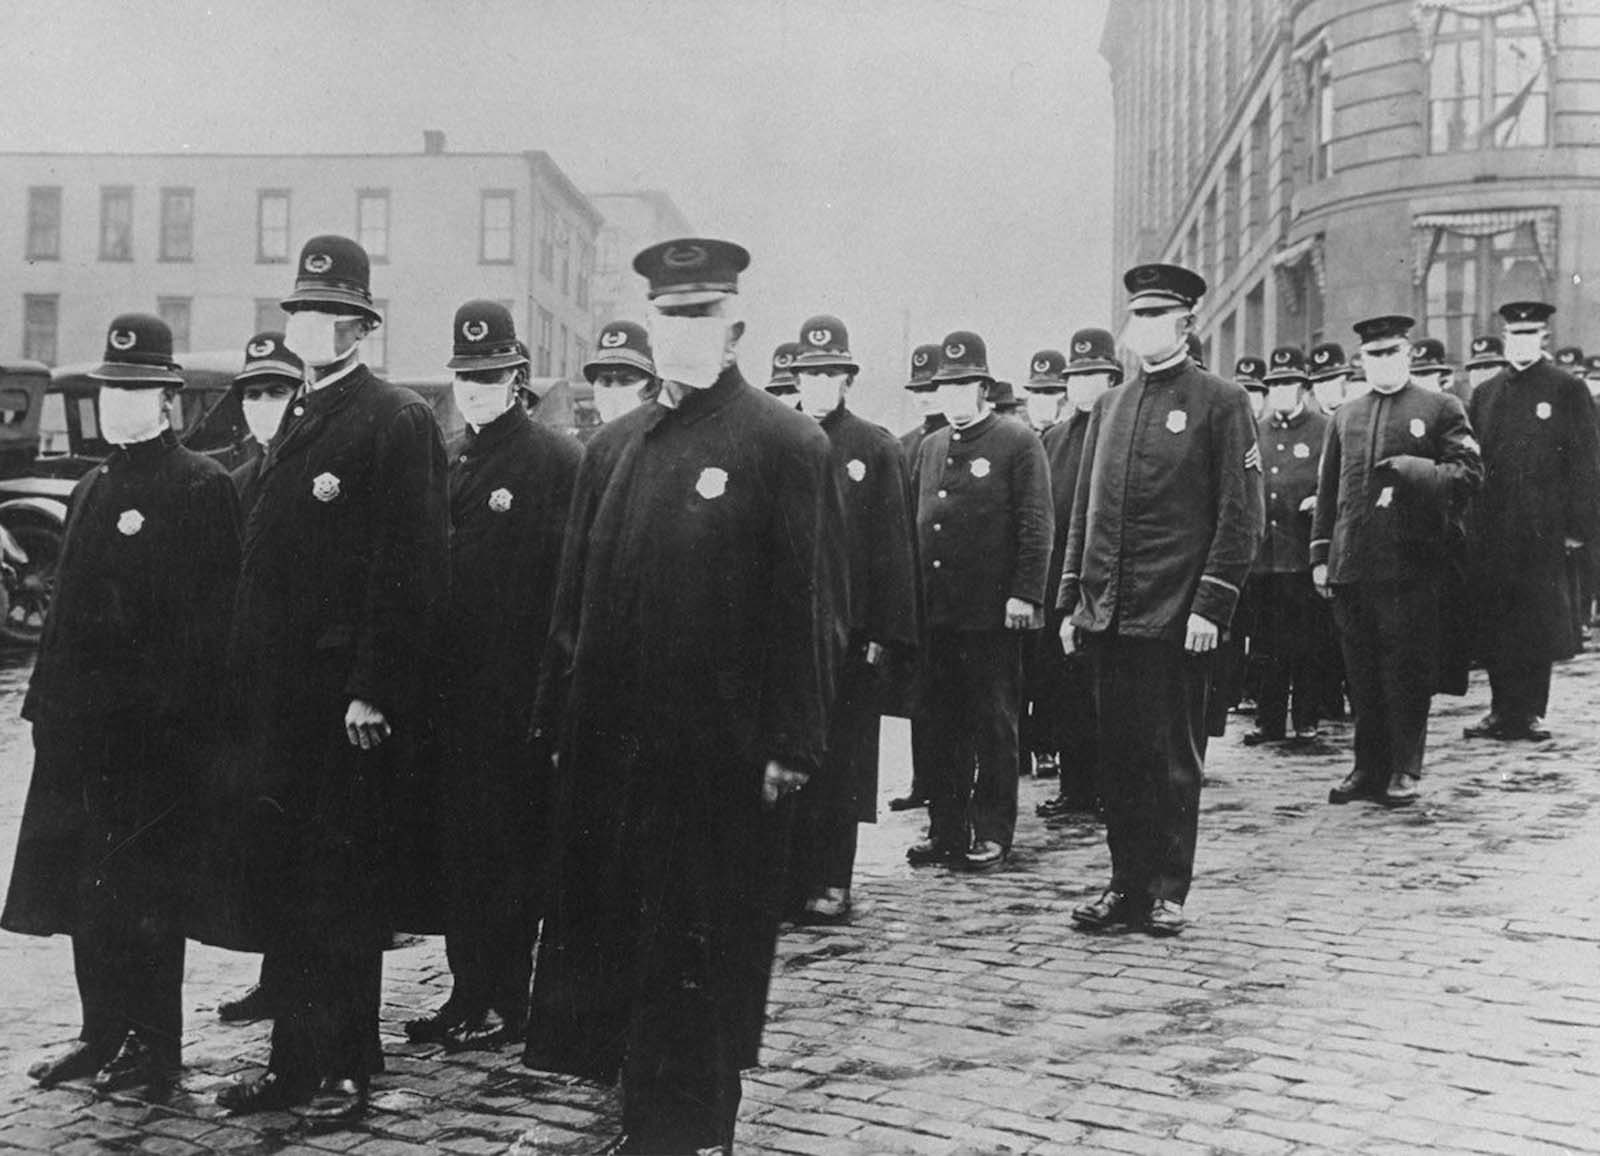 Seattle policemen wear protective gauze face masks during the influenza epidemic. 1918.